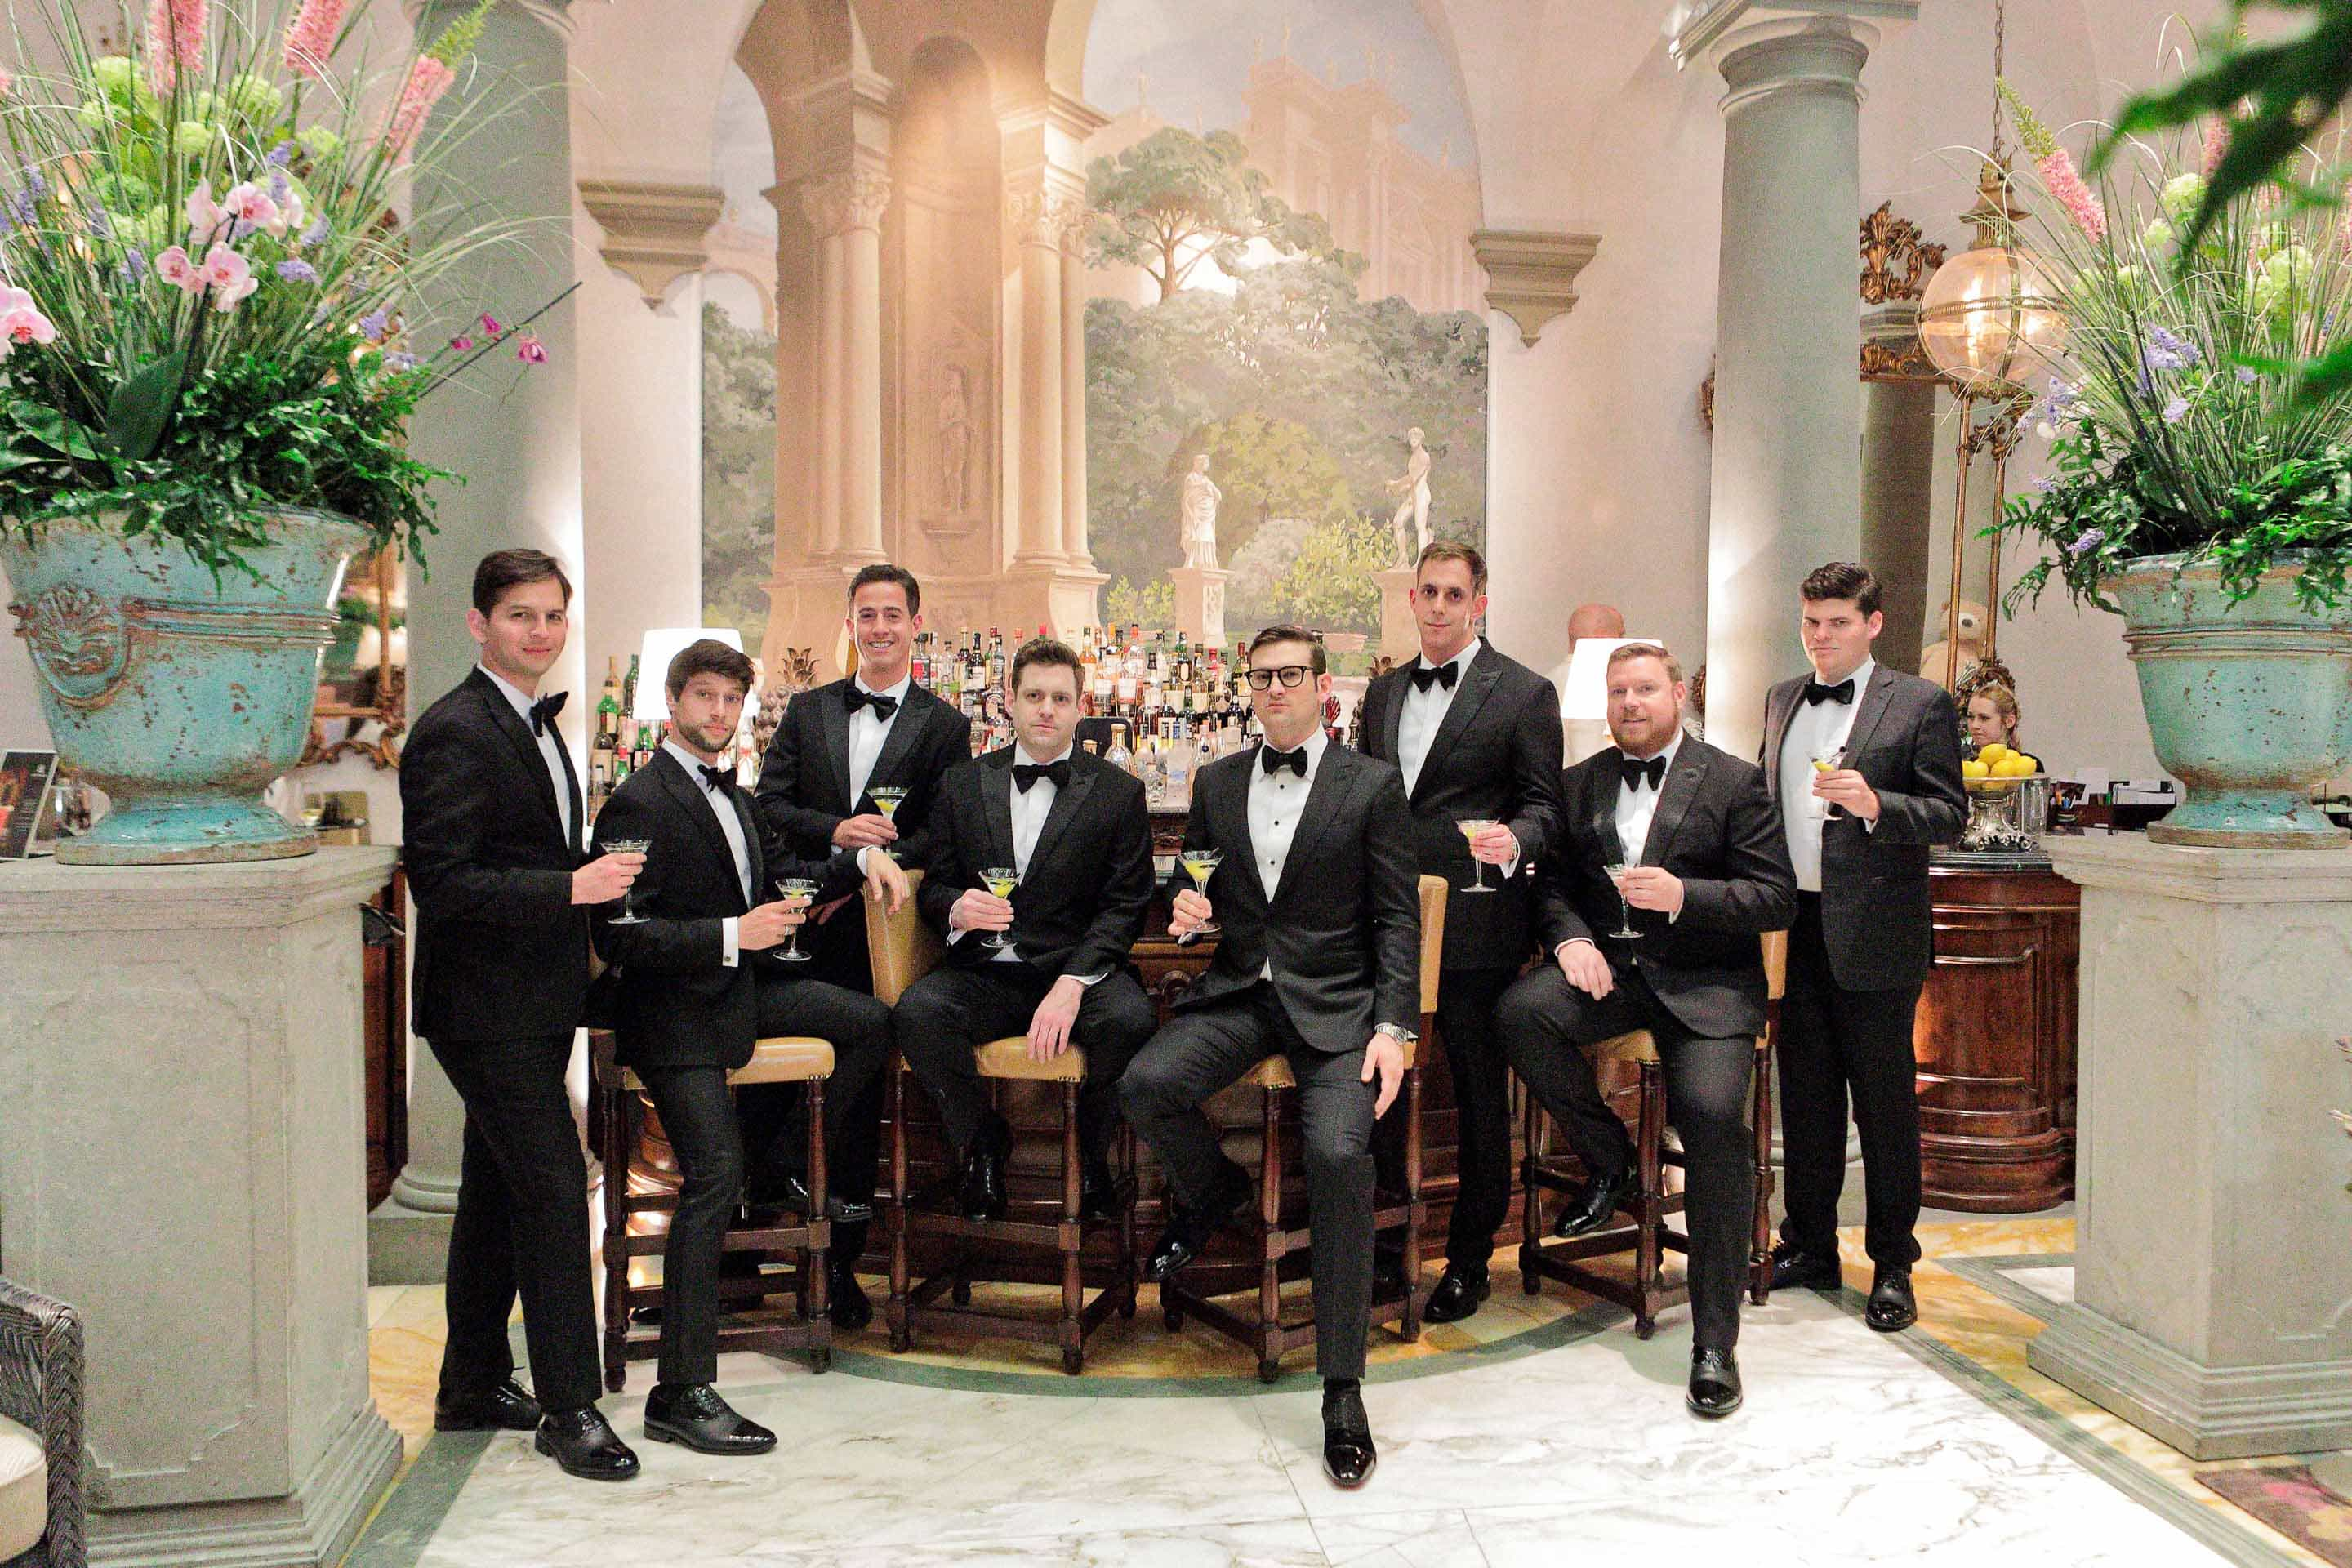 groomsmen posing for the photographer in the hall of the st regis hotel of florence